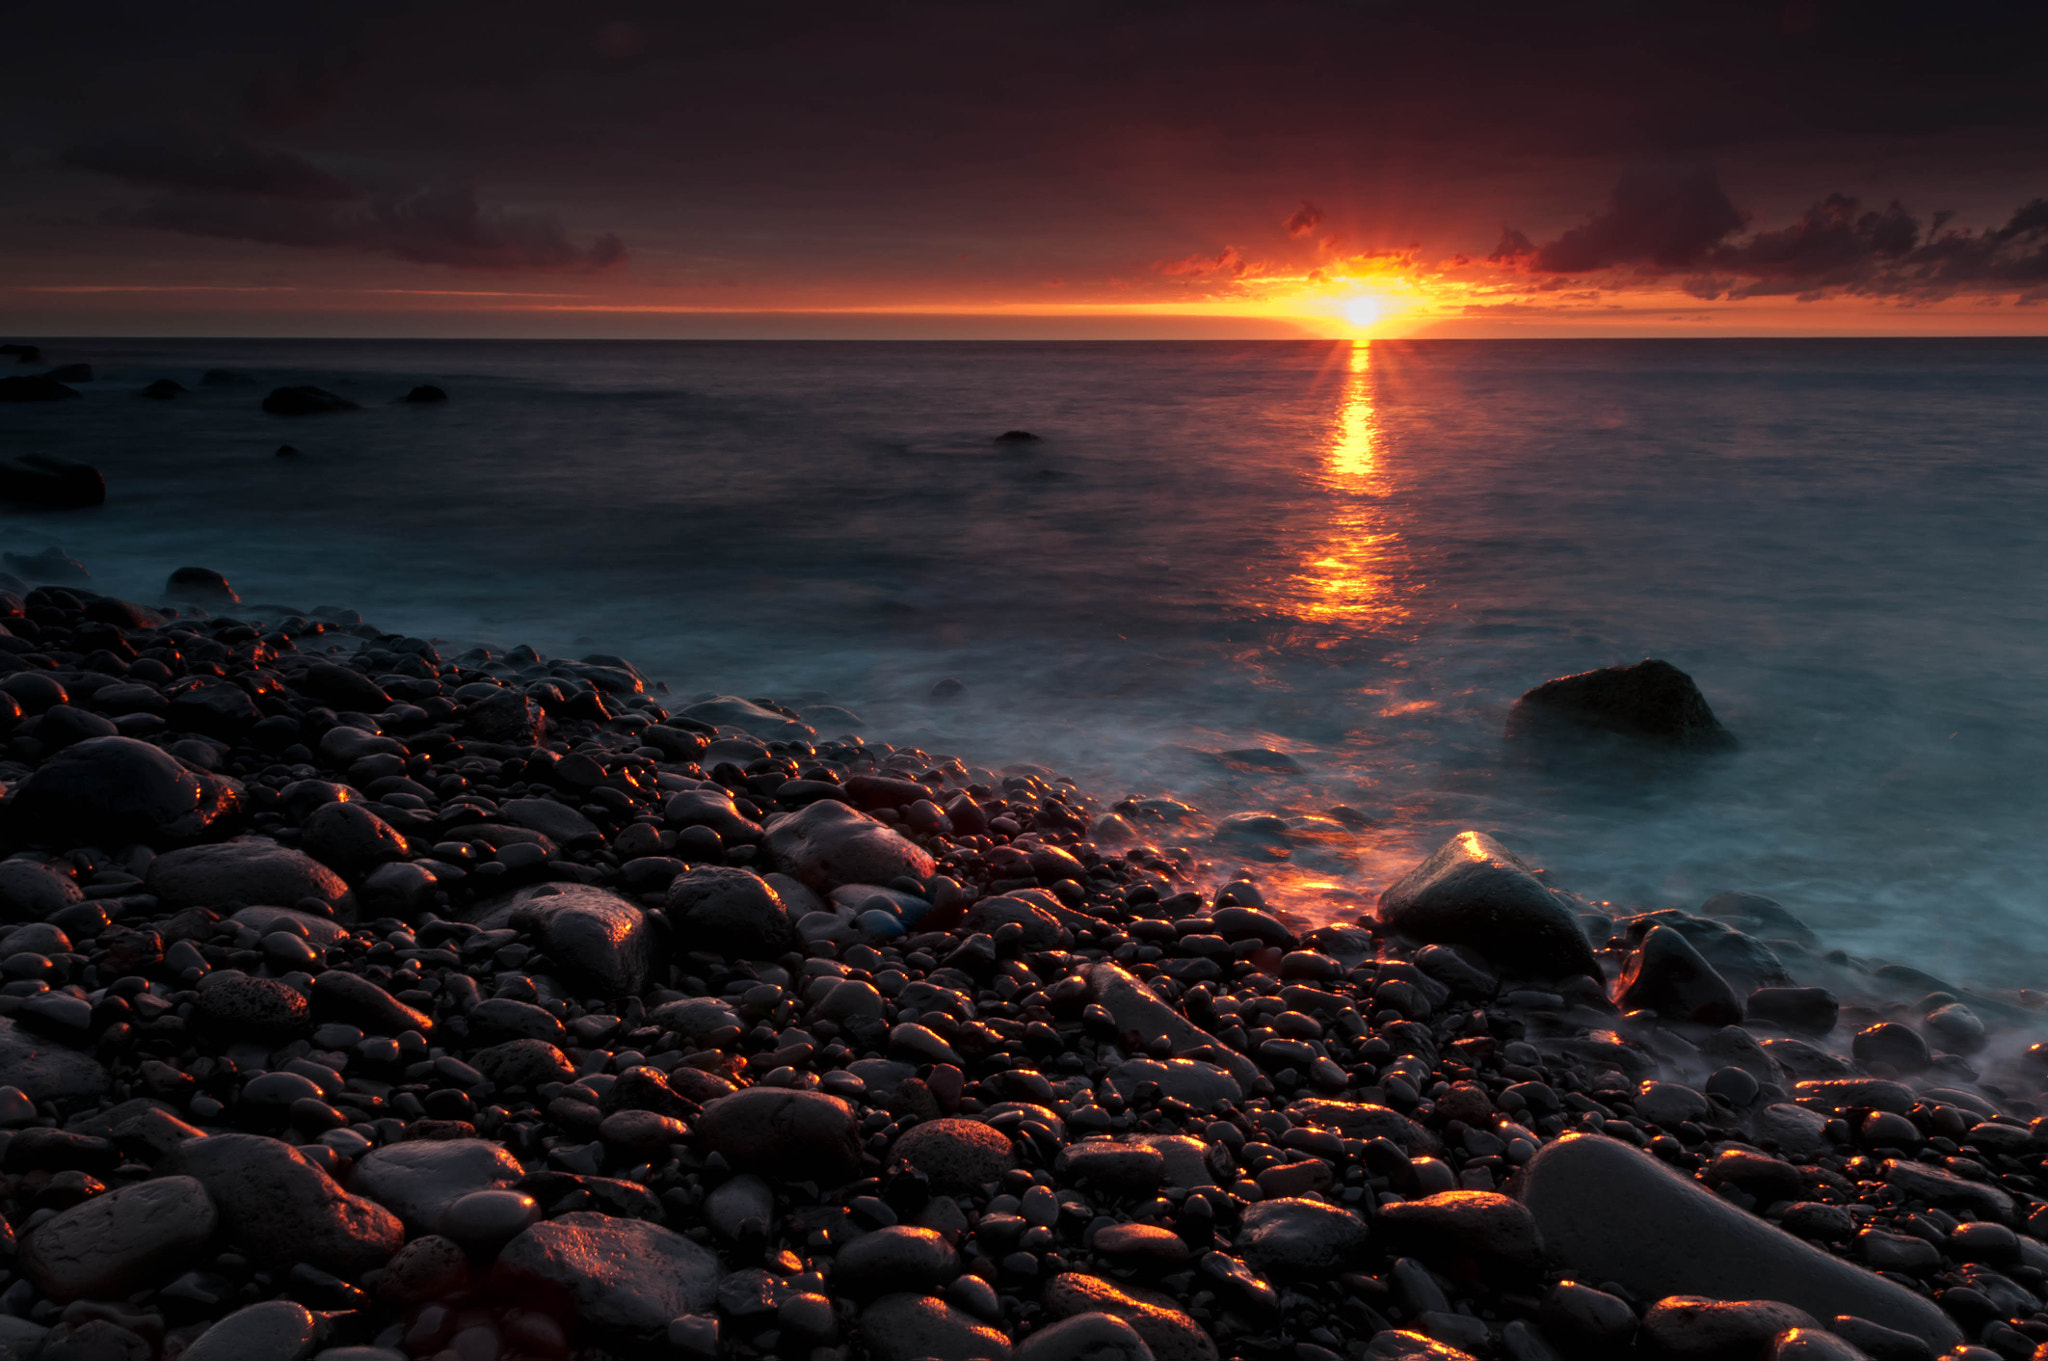 Photograph Sunset Jardim do Mar 2 by Anders Larsson on 500px